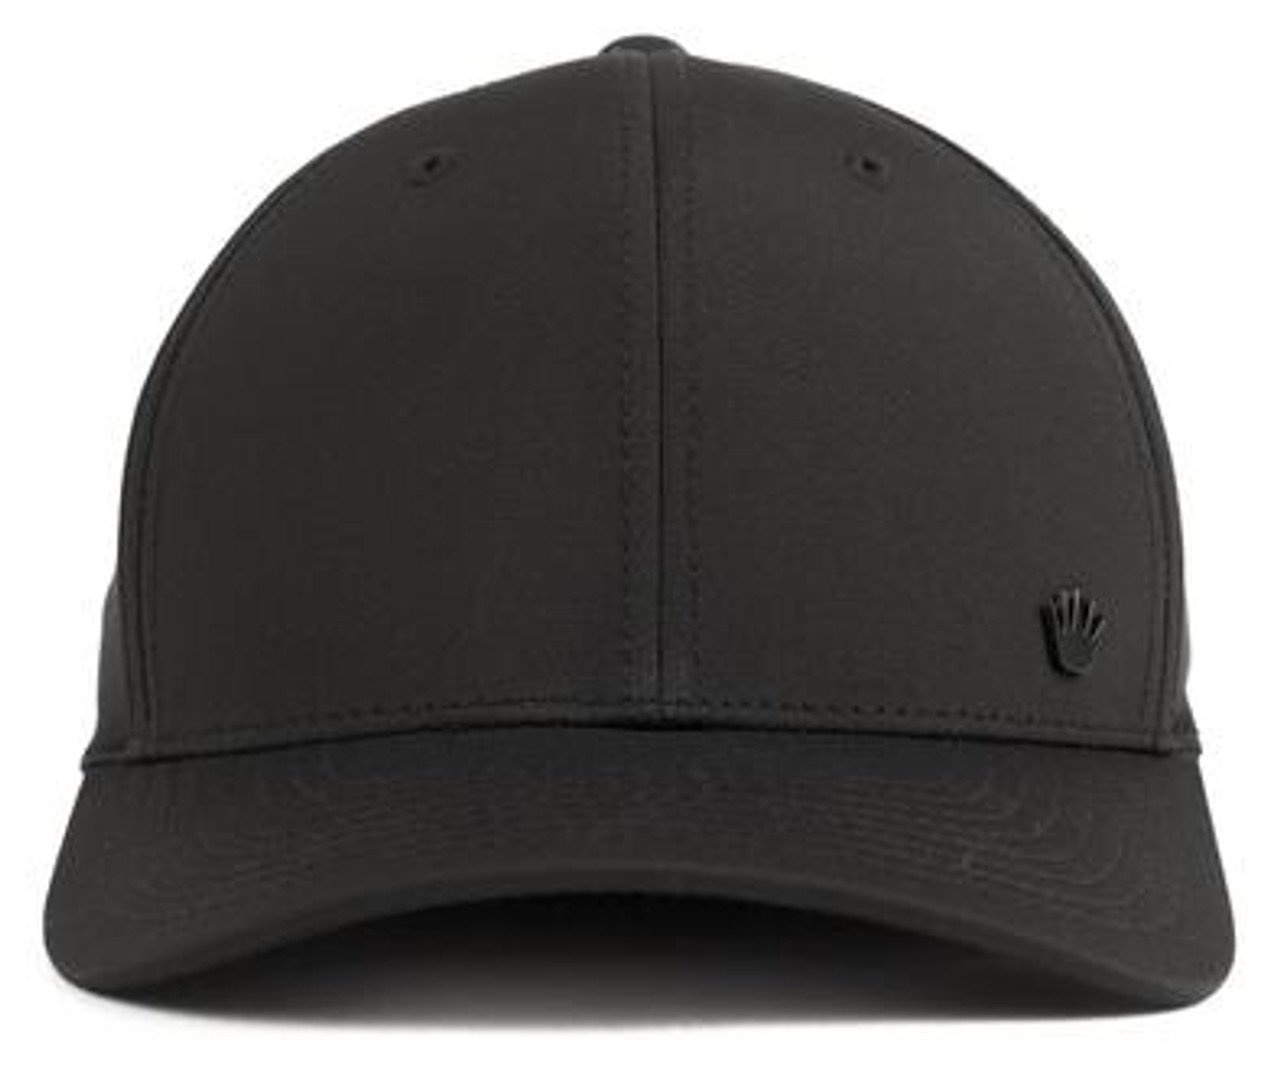 No Bad Ideas - Flexfit Cap - Bolt Tech - Black